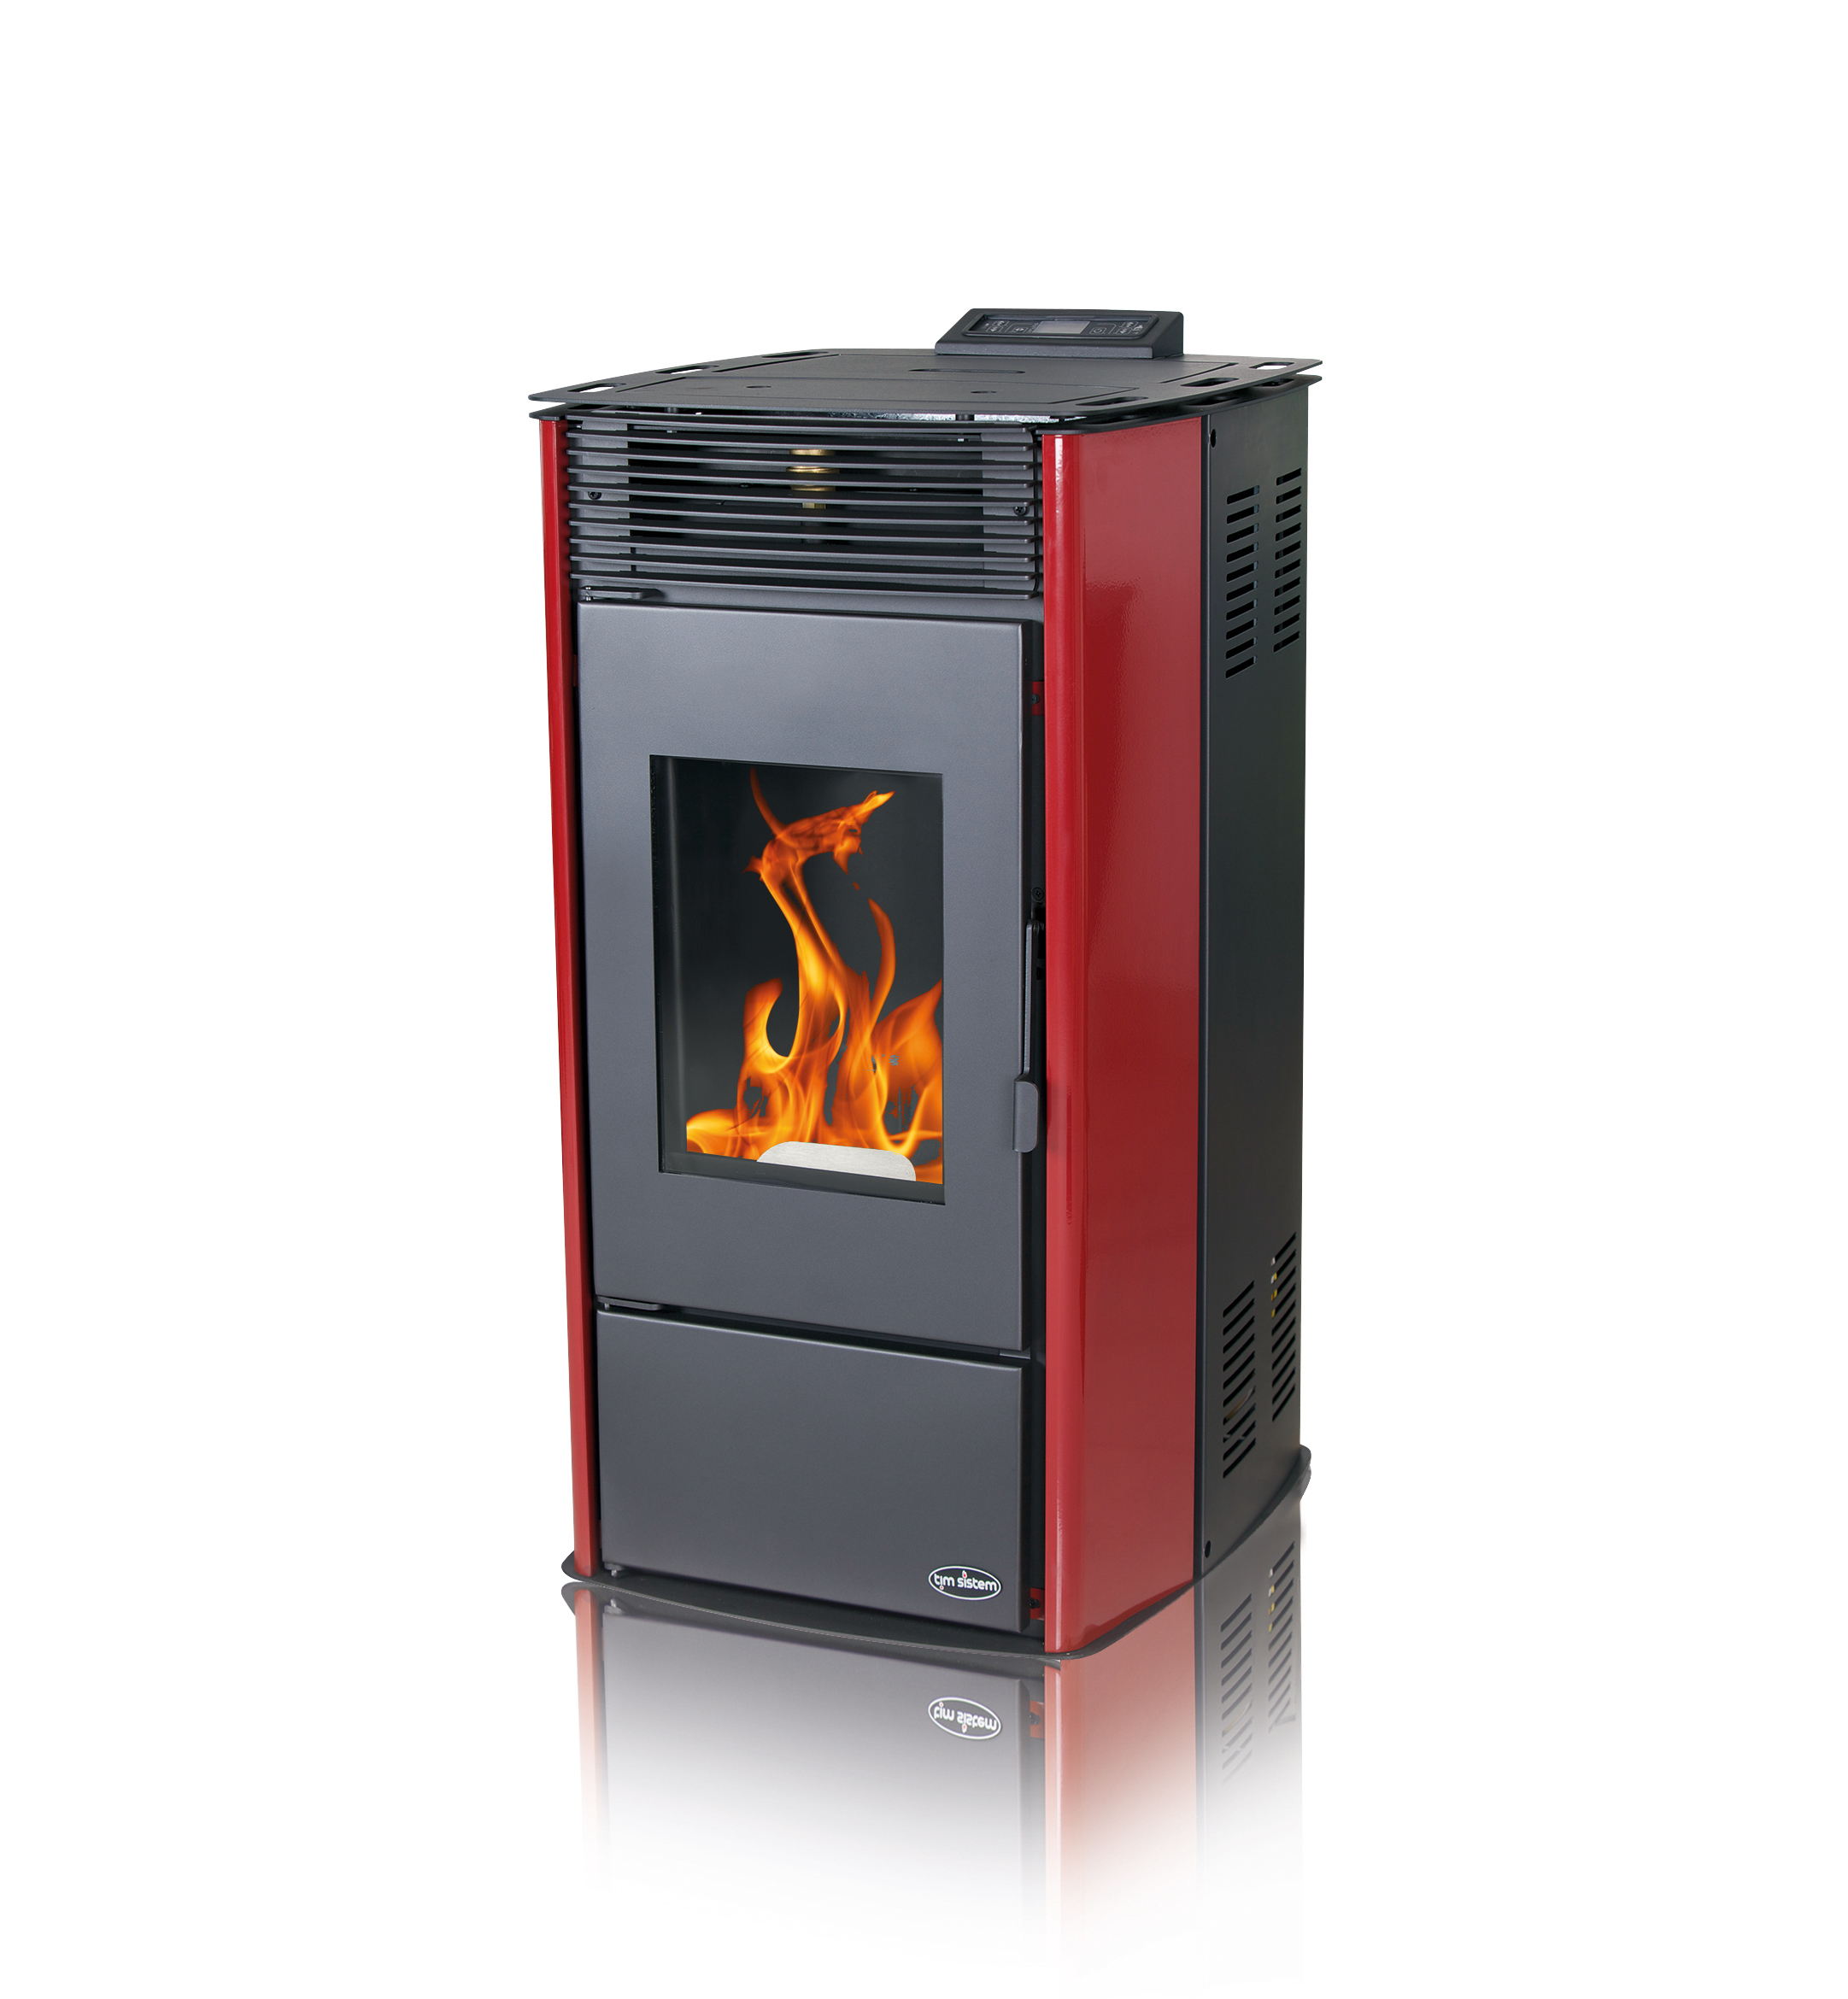 Centralheating pellet stove Rittium Hydro red 14kW